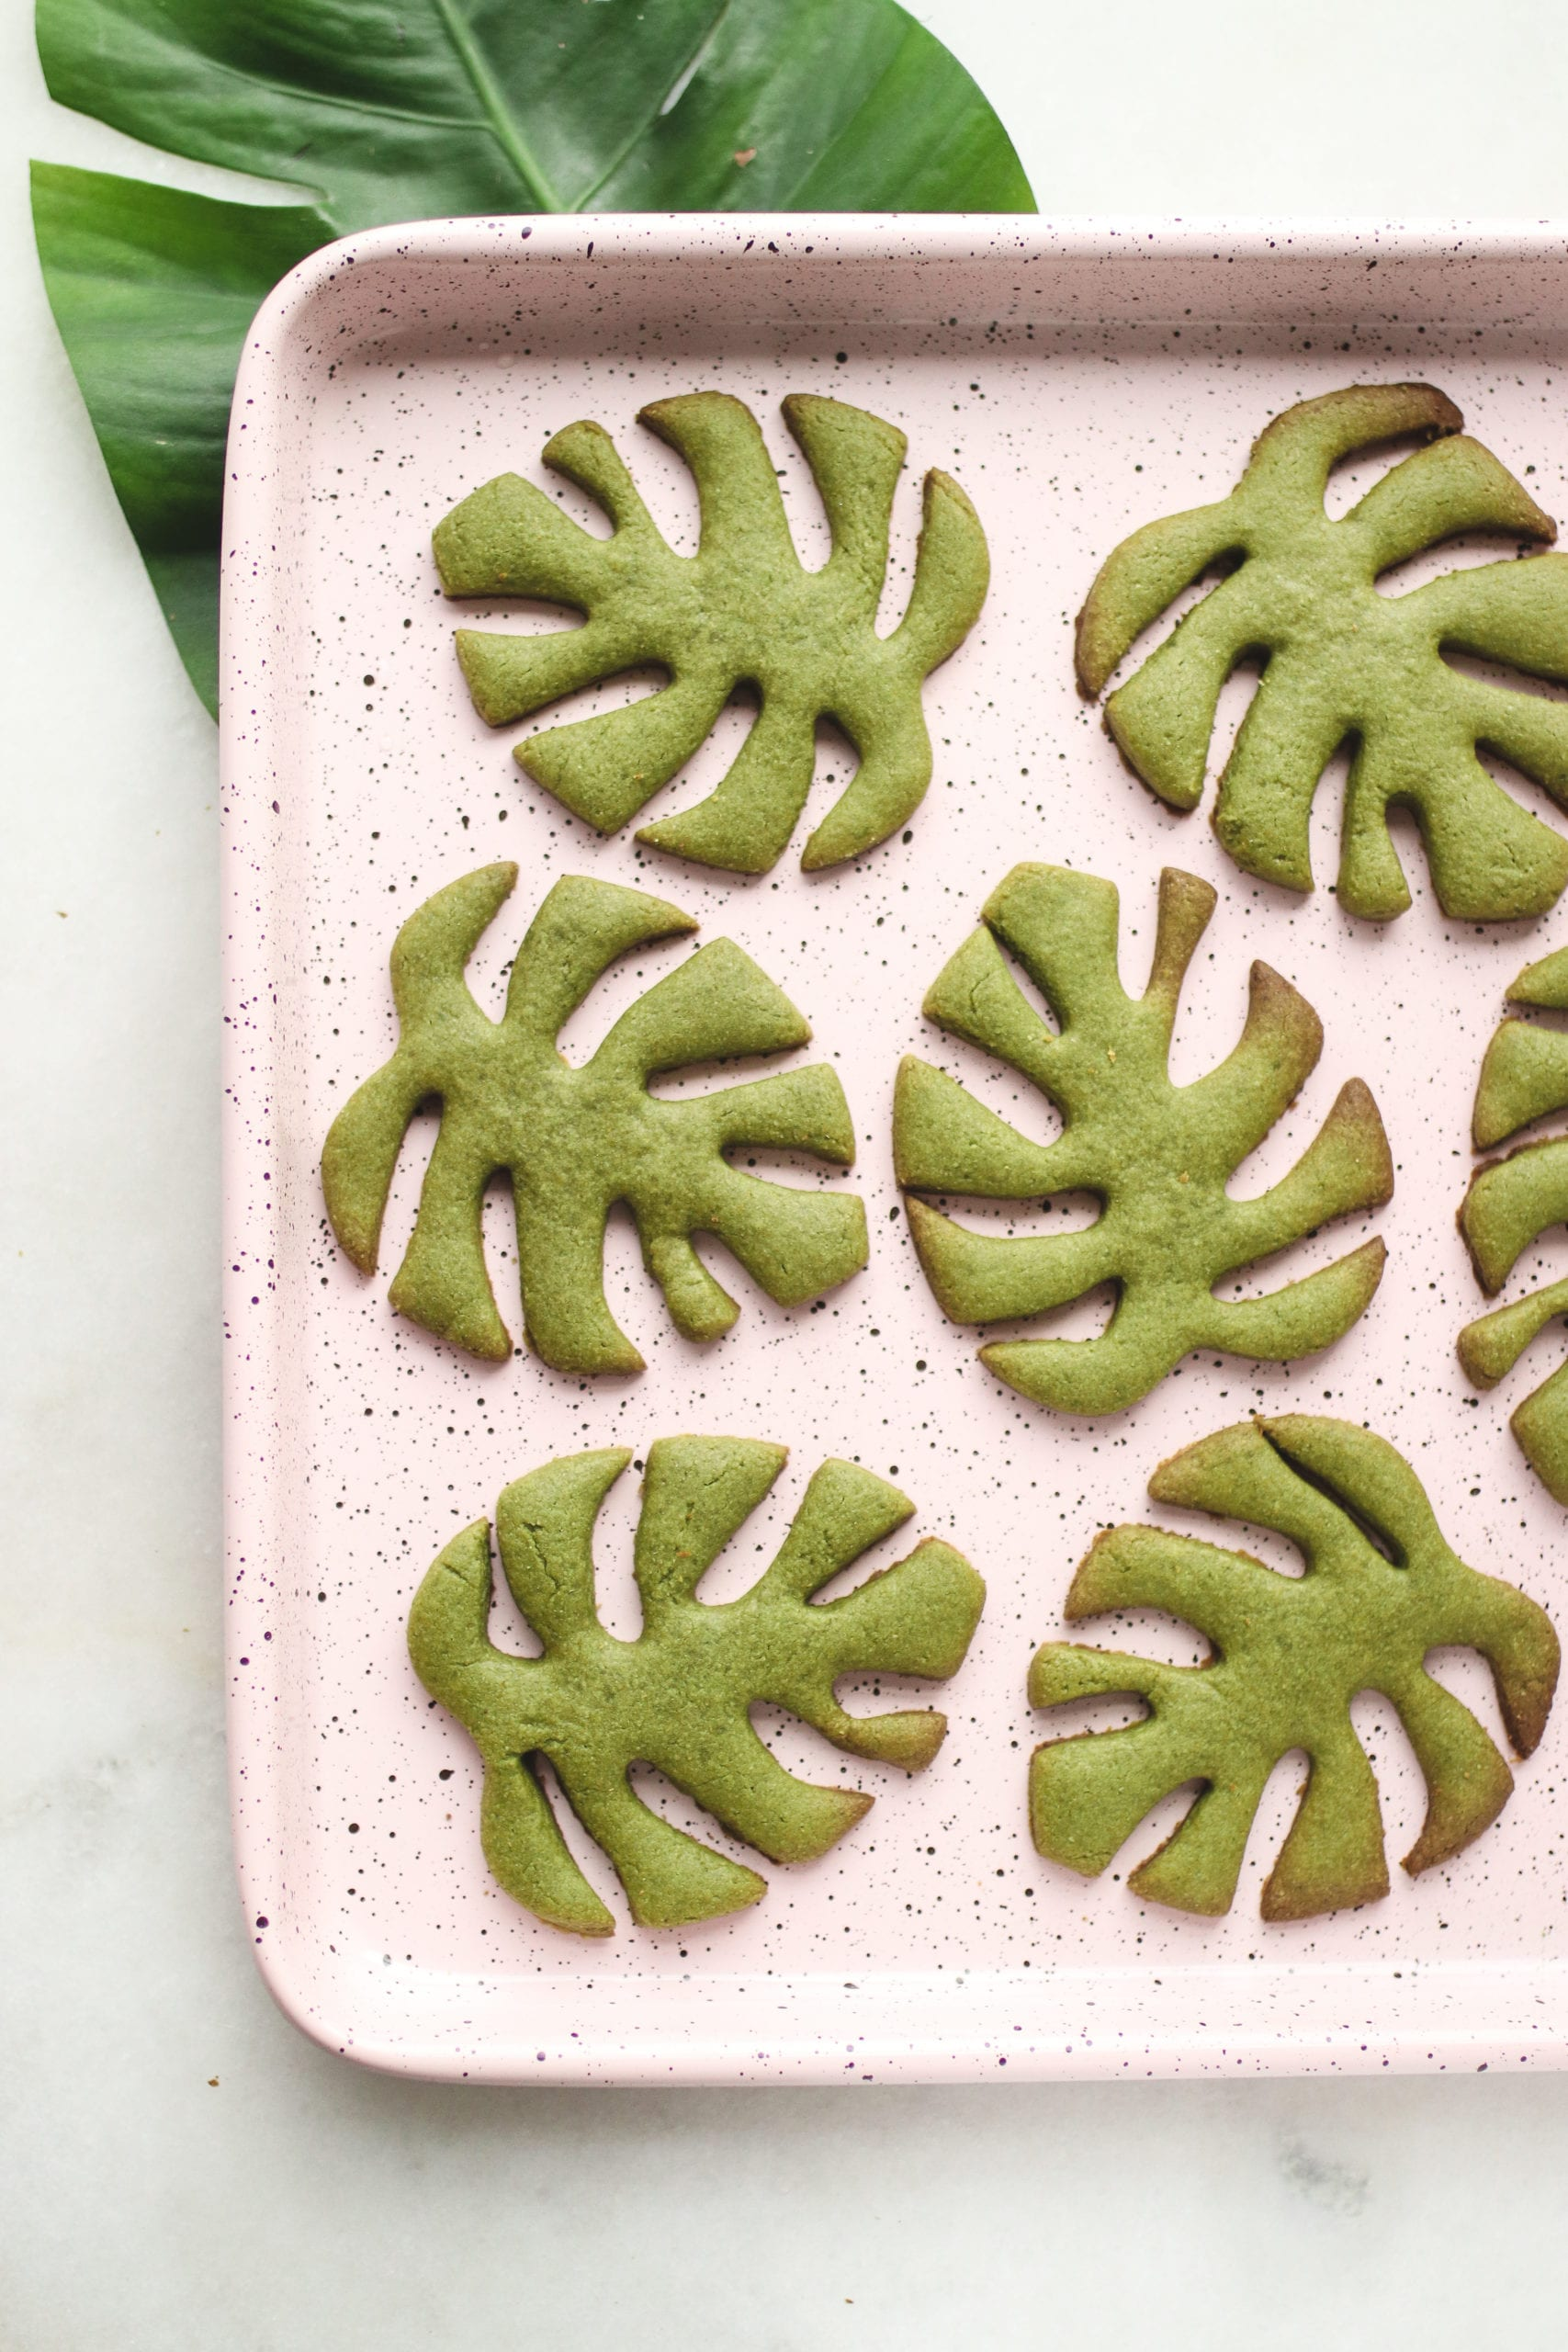 """width=""""474"""" height=""""711""""></p><p>My favourite plant + my favourite tea flavour = the cutest Matcha Monstera Cookies! I've been dreaming up this cookie recipe and shape for a long time but couldn't figure out how to go about making the cookies the perfect monstera shape. I also doubted that tahini and matcha would taste good together, but I'm glad I gave it a shot, because once again, my classic Maple Tahini Cookie recipe base has come to the rescue!</p><p><img src=""""https://comoservegano.com/wp-content/uploads/2021/06/IMG_9938.jpg"""" alt="""